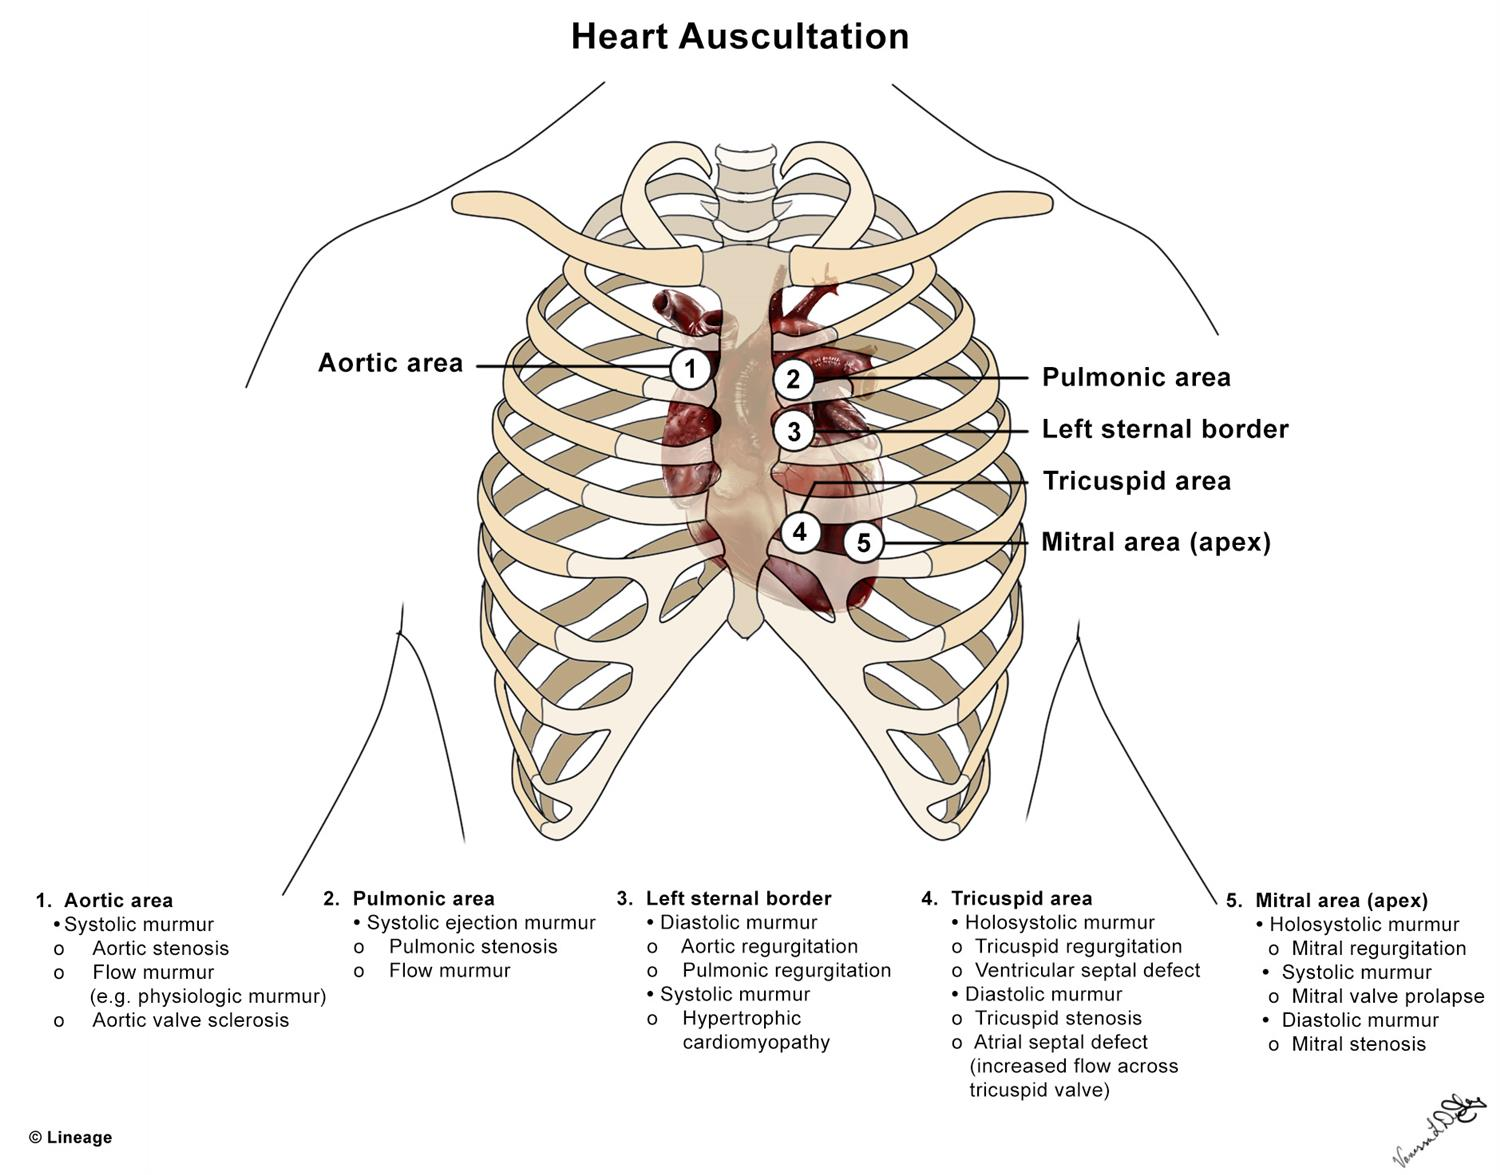 https://upload.medbullets.com/topic/108089/images/082817vldcardiacheartauscultation.jpg